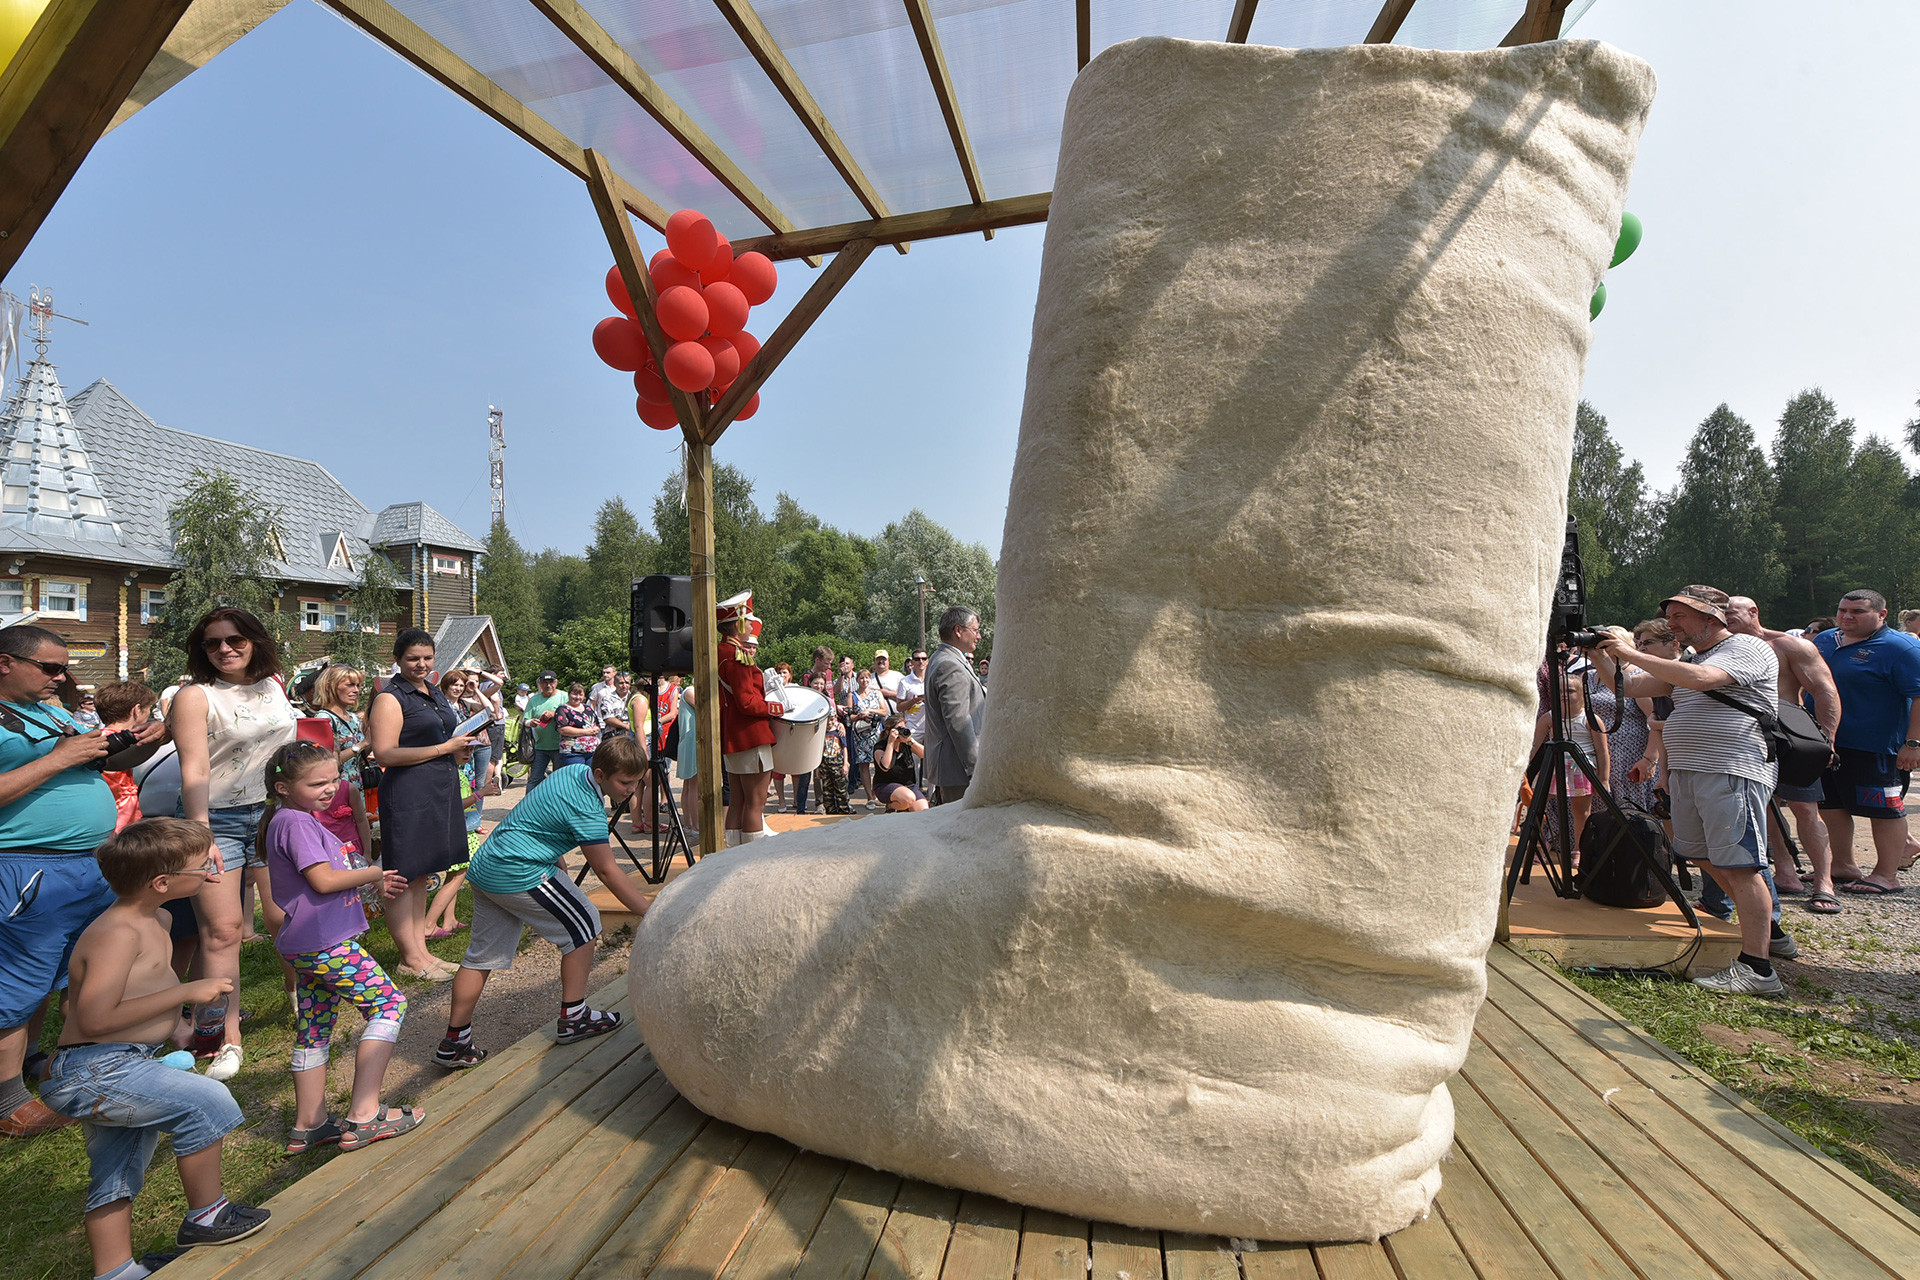 People look at a giant valenki boot made by artist Valeria Loshak